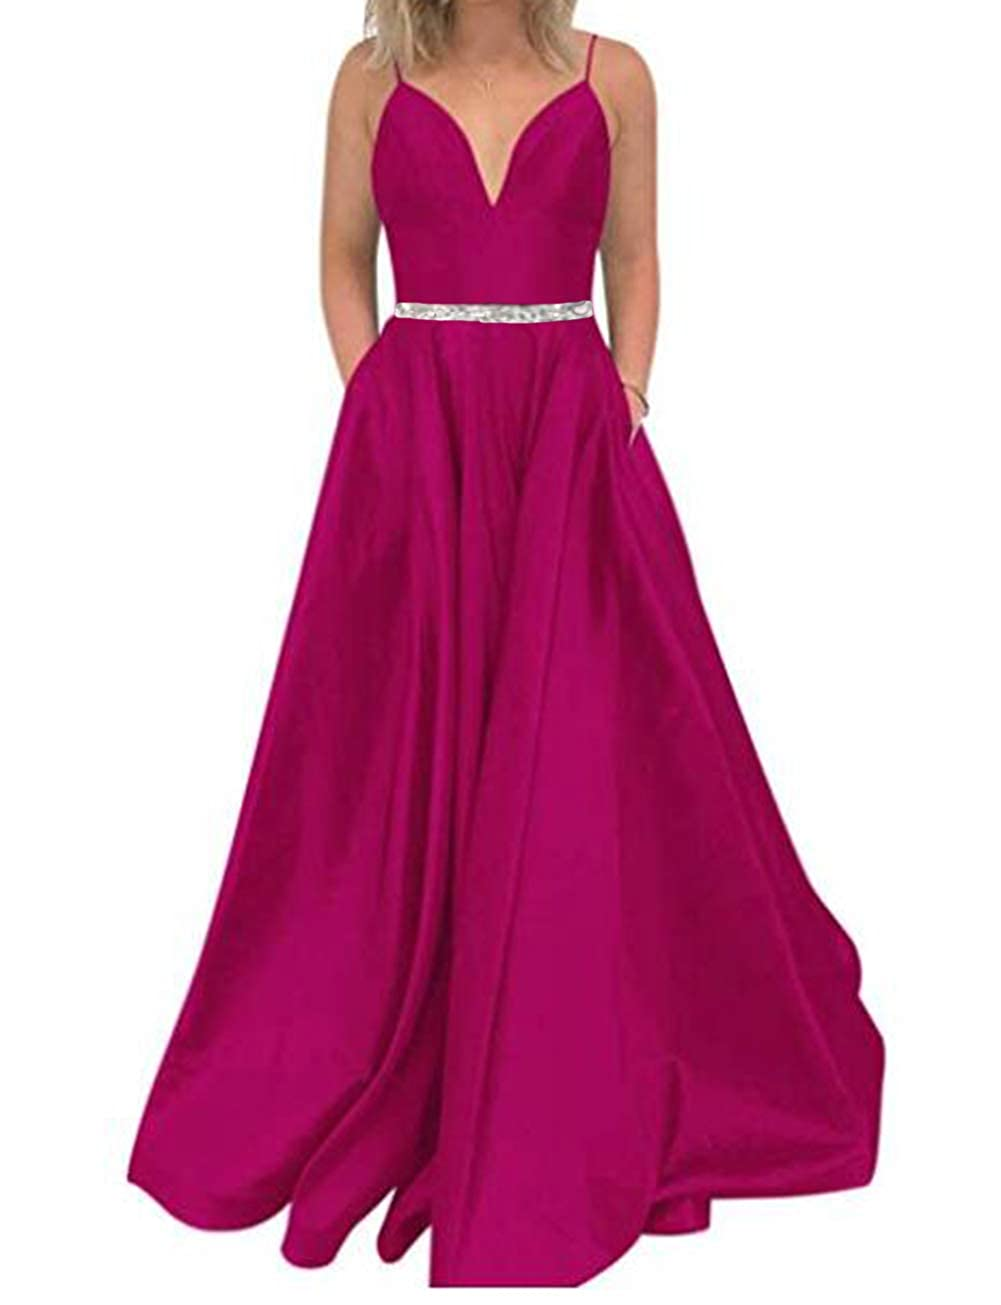 pink Red Tsbridal Women's A Line Bead Prom Dresses V Neck Satin with Pockets Evening Gown